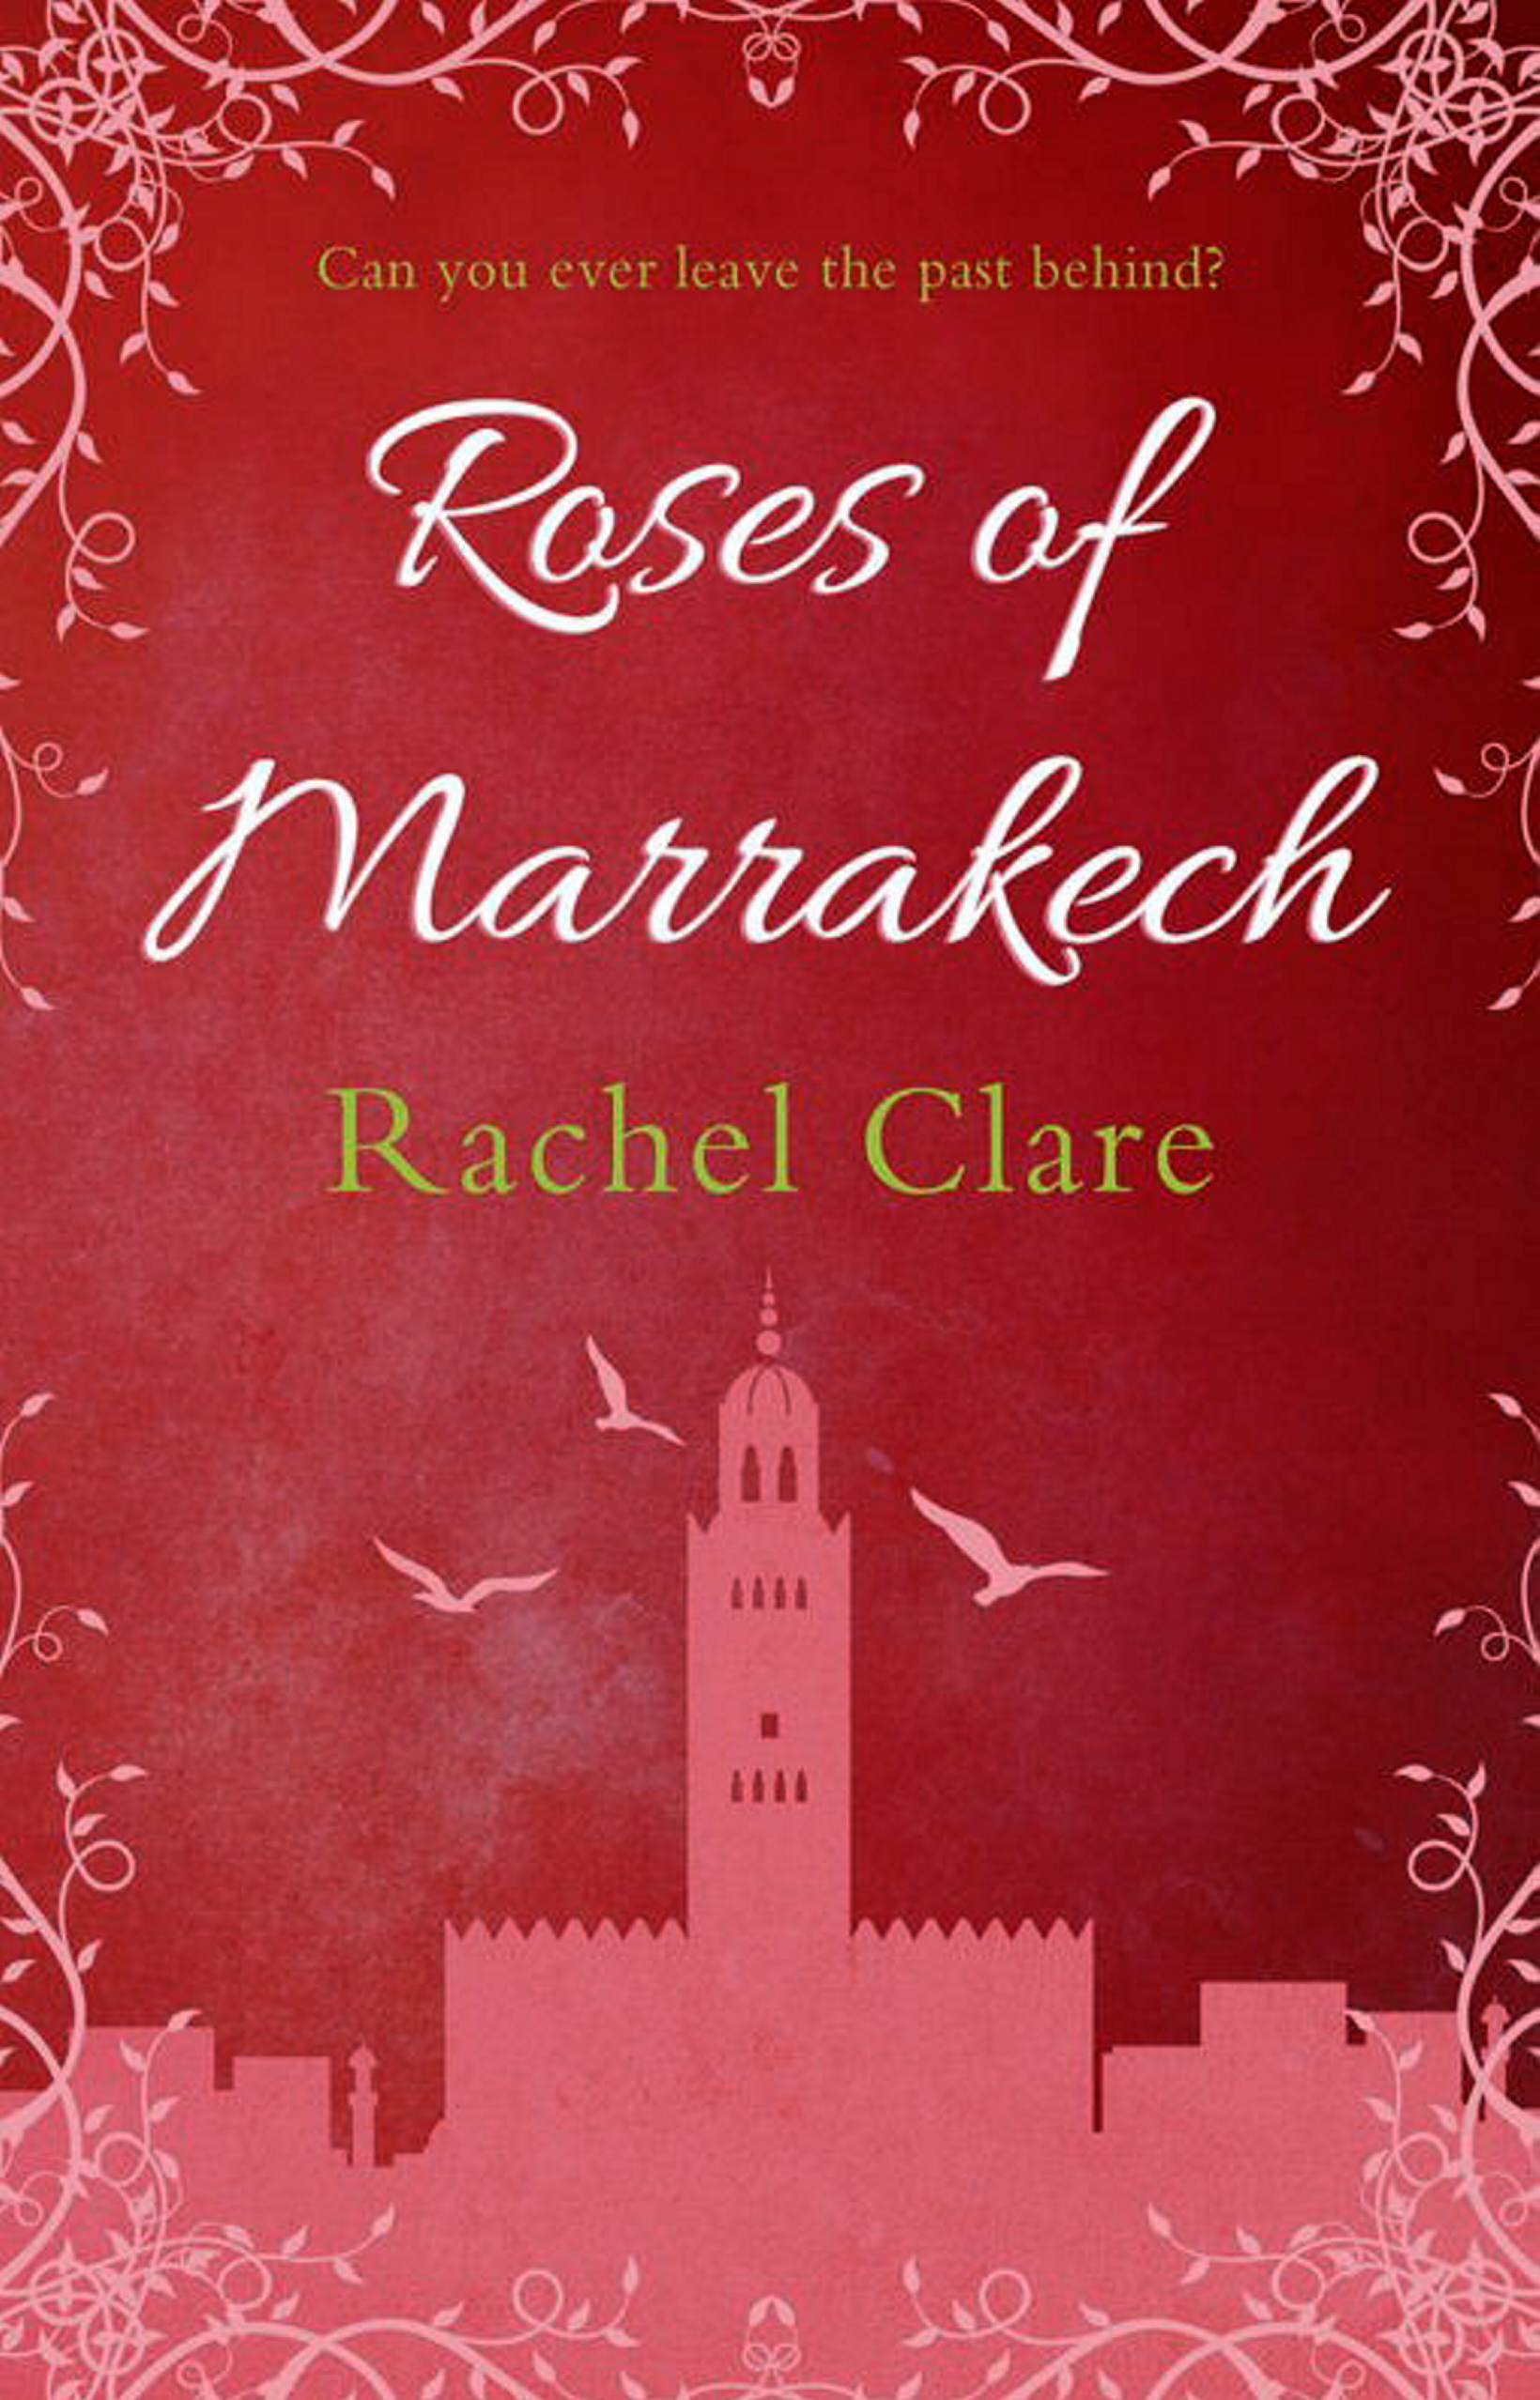 Author's debut novel takes reader on a journey from wartime Suffolk to the souks of Marrakech